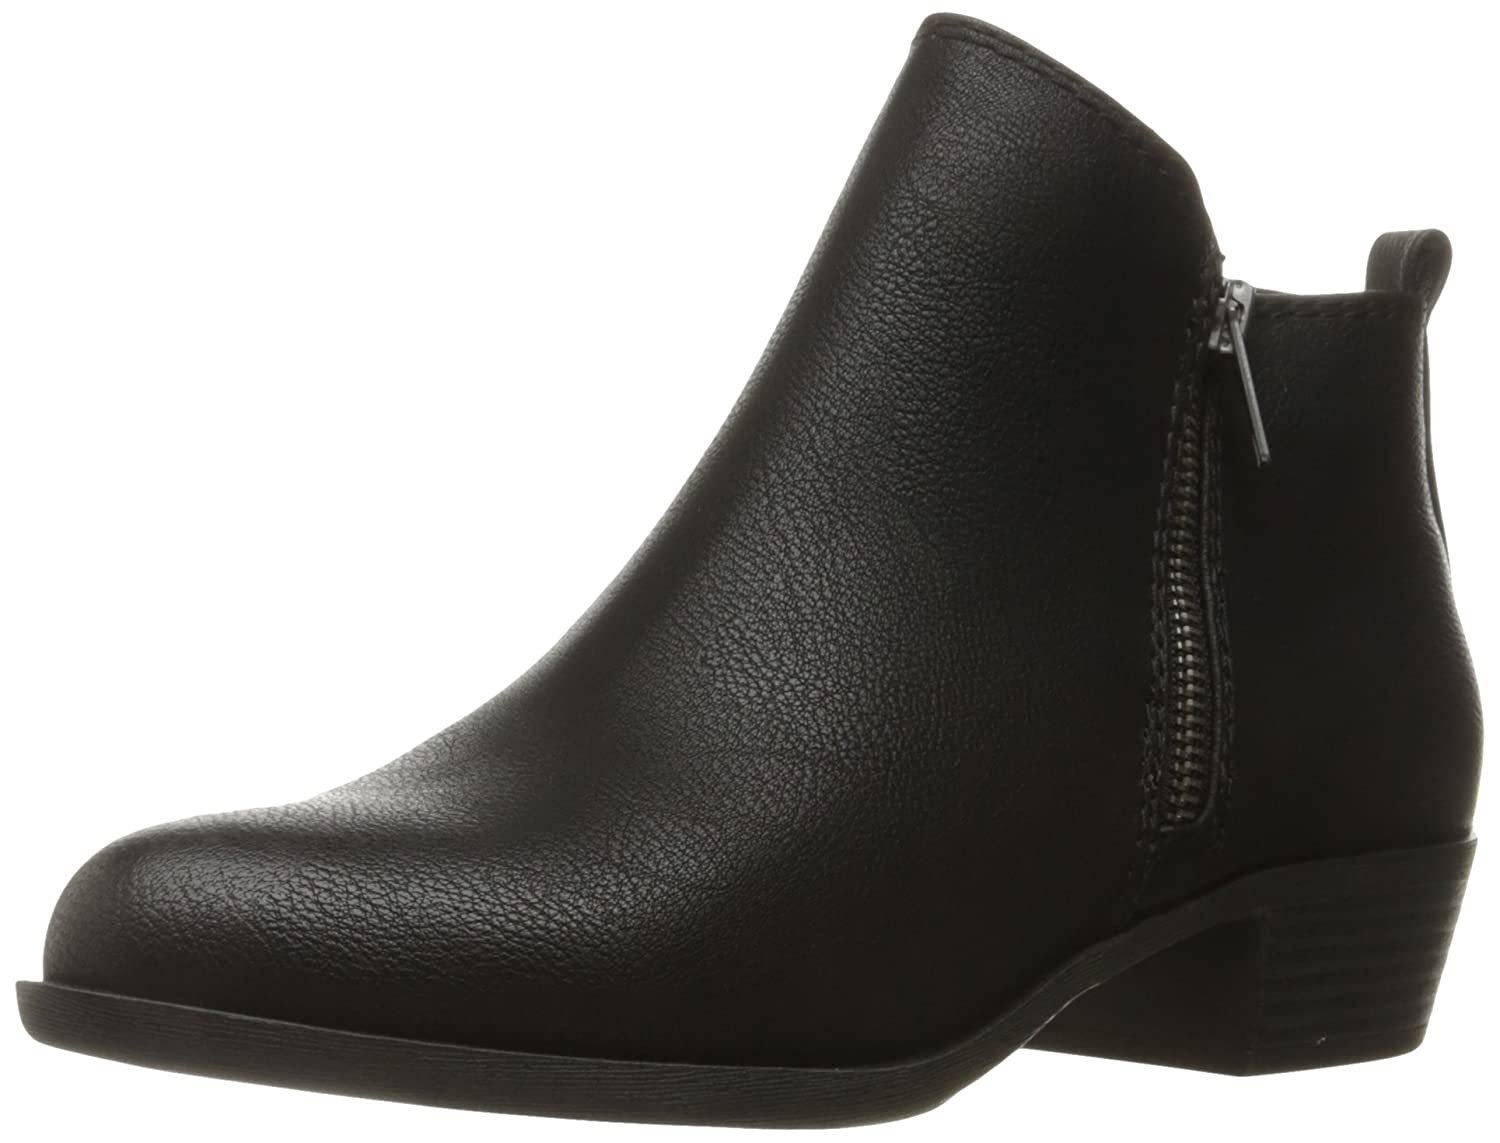 94628d30053 Amazon.com   Madden Girl Women's Bronco Ankle Bootie   Ankle & Bootie